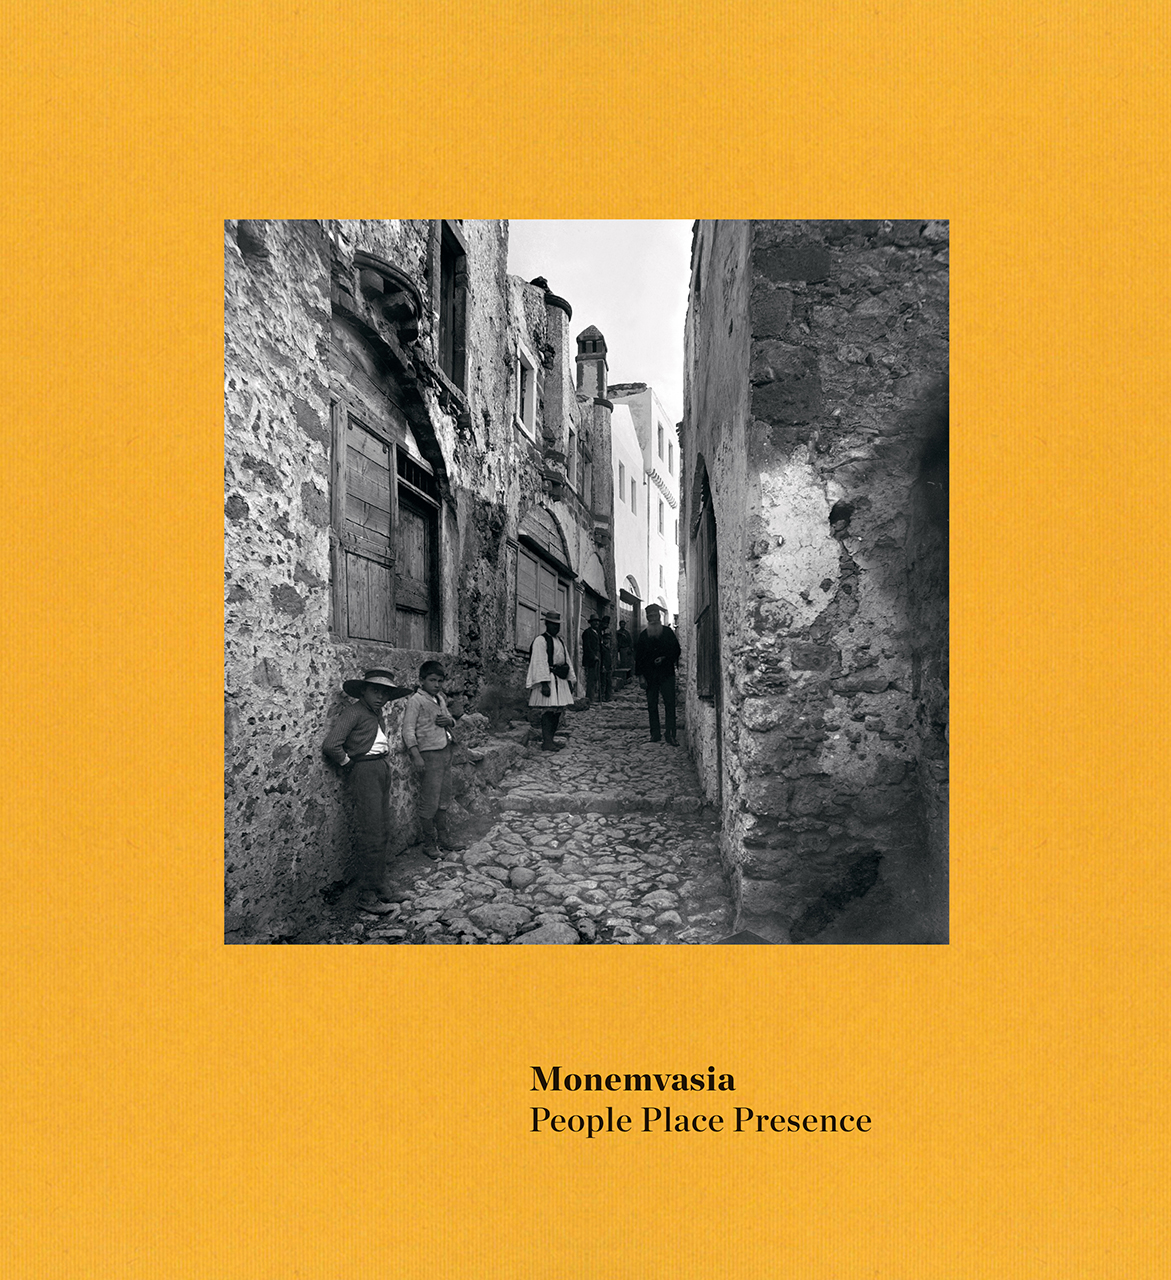 Monemvasia: People Place Presence